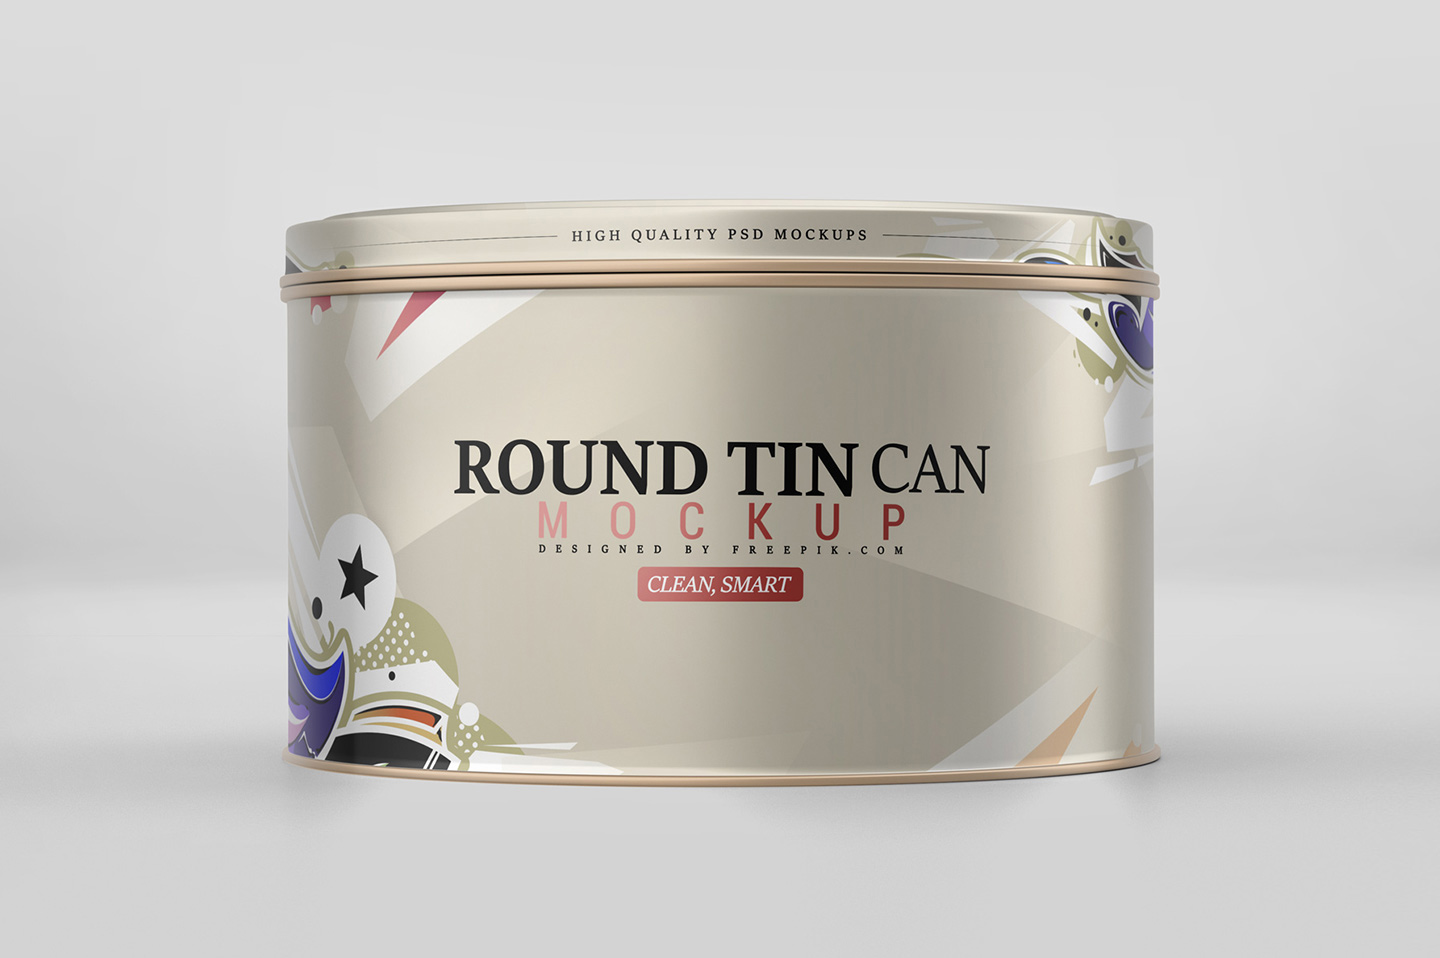 Round Tin Can Mockup example image 3